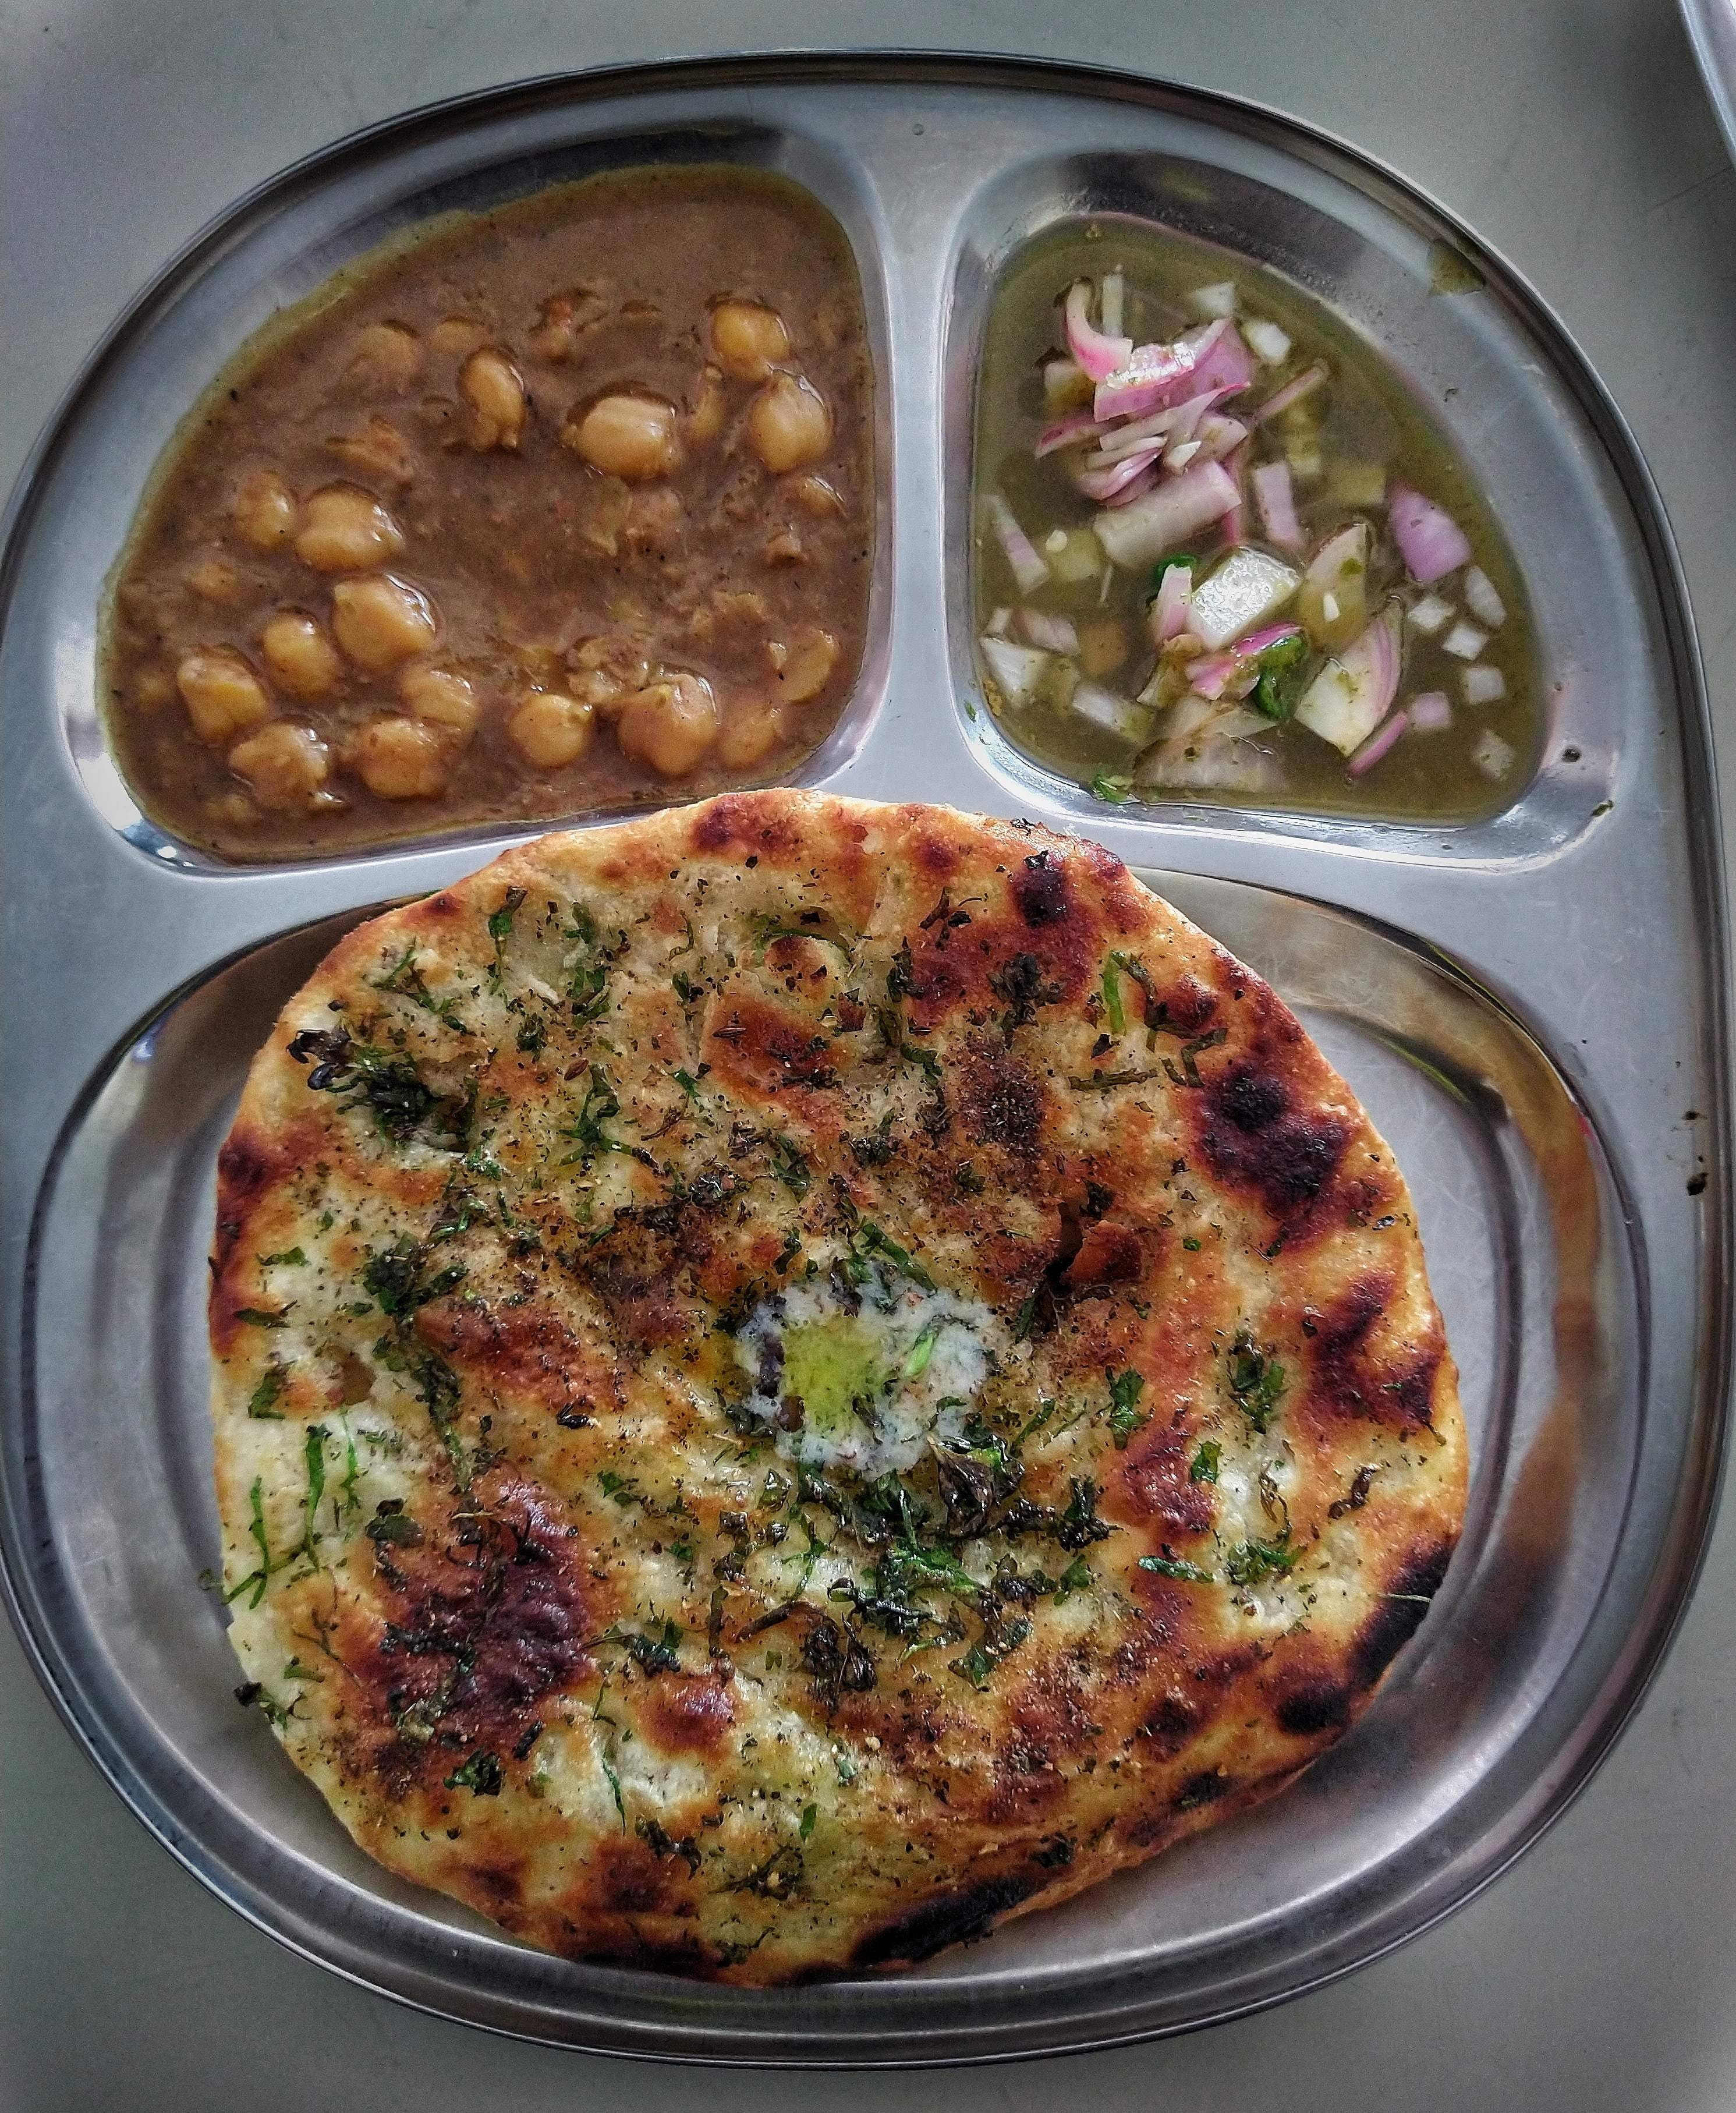 Dish,Food,Cuisine,Ingredient,Flatbread,Naan,Lunch,Kulcha,Produce,Uttapam